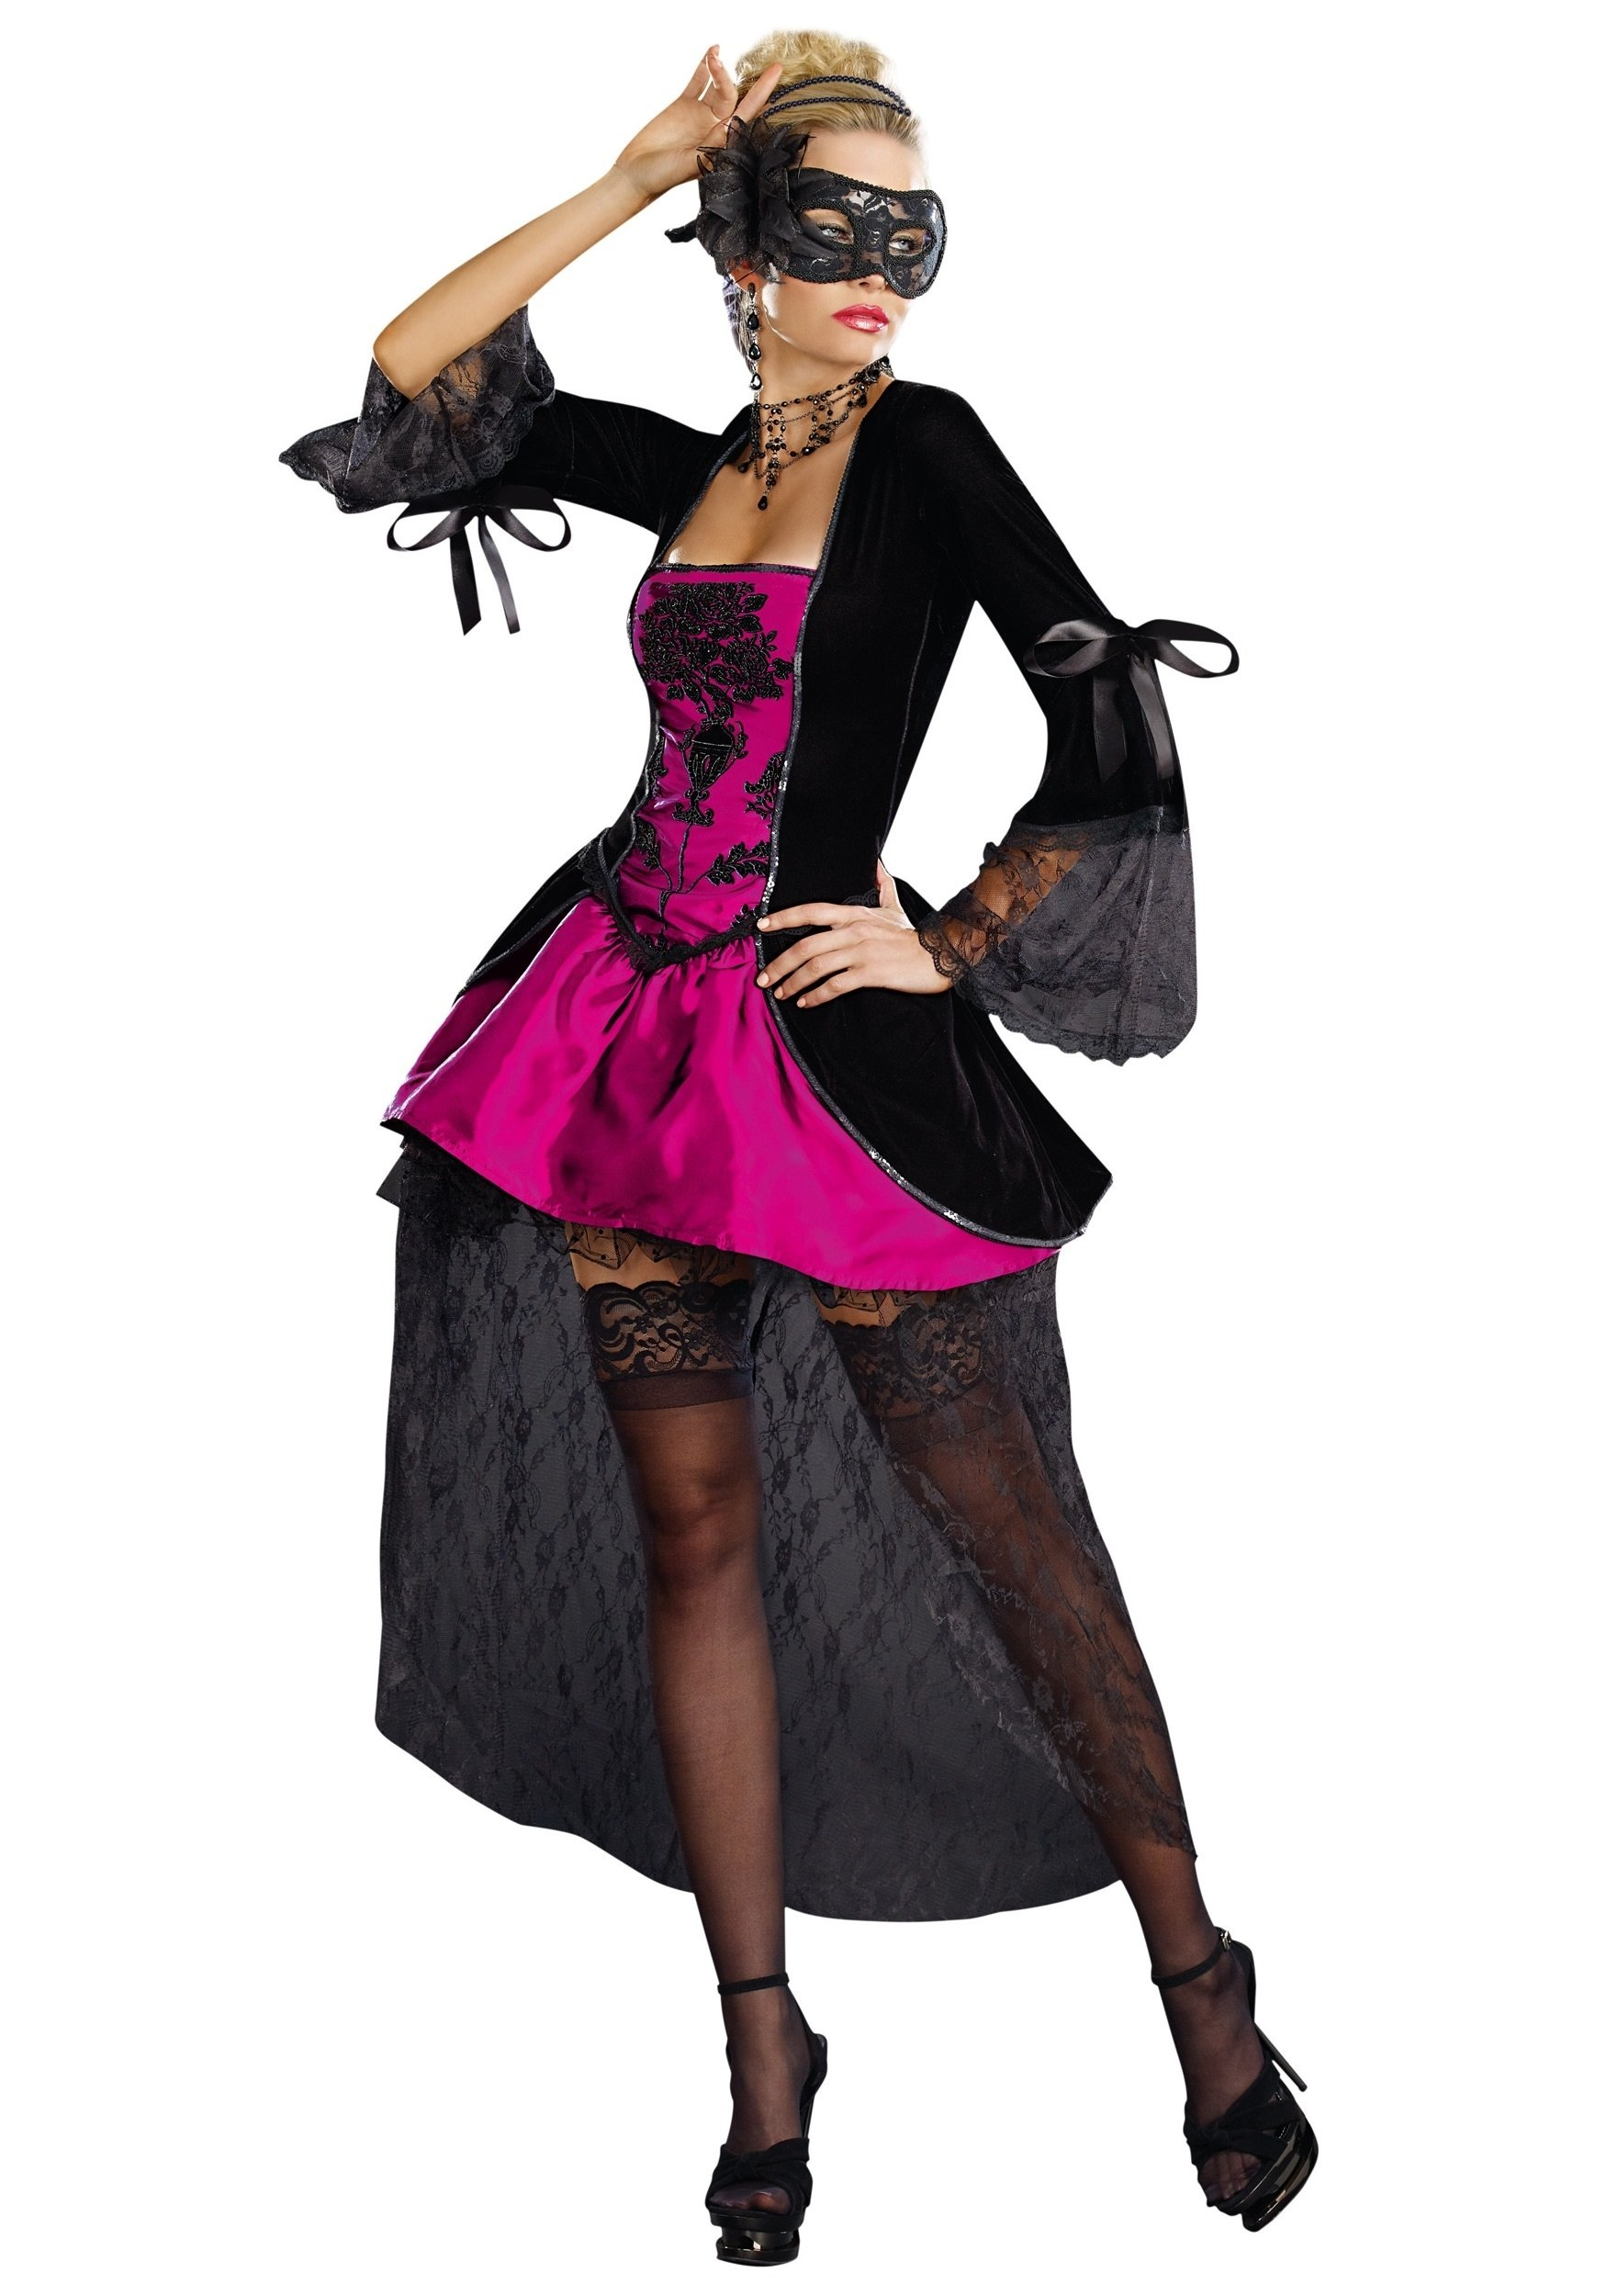 10 Lovable Masquerade Costume Ideas For Women sexy venetian masquerade costume halloween costume ideas 2016 2020